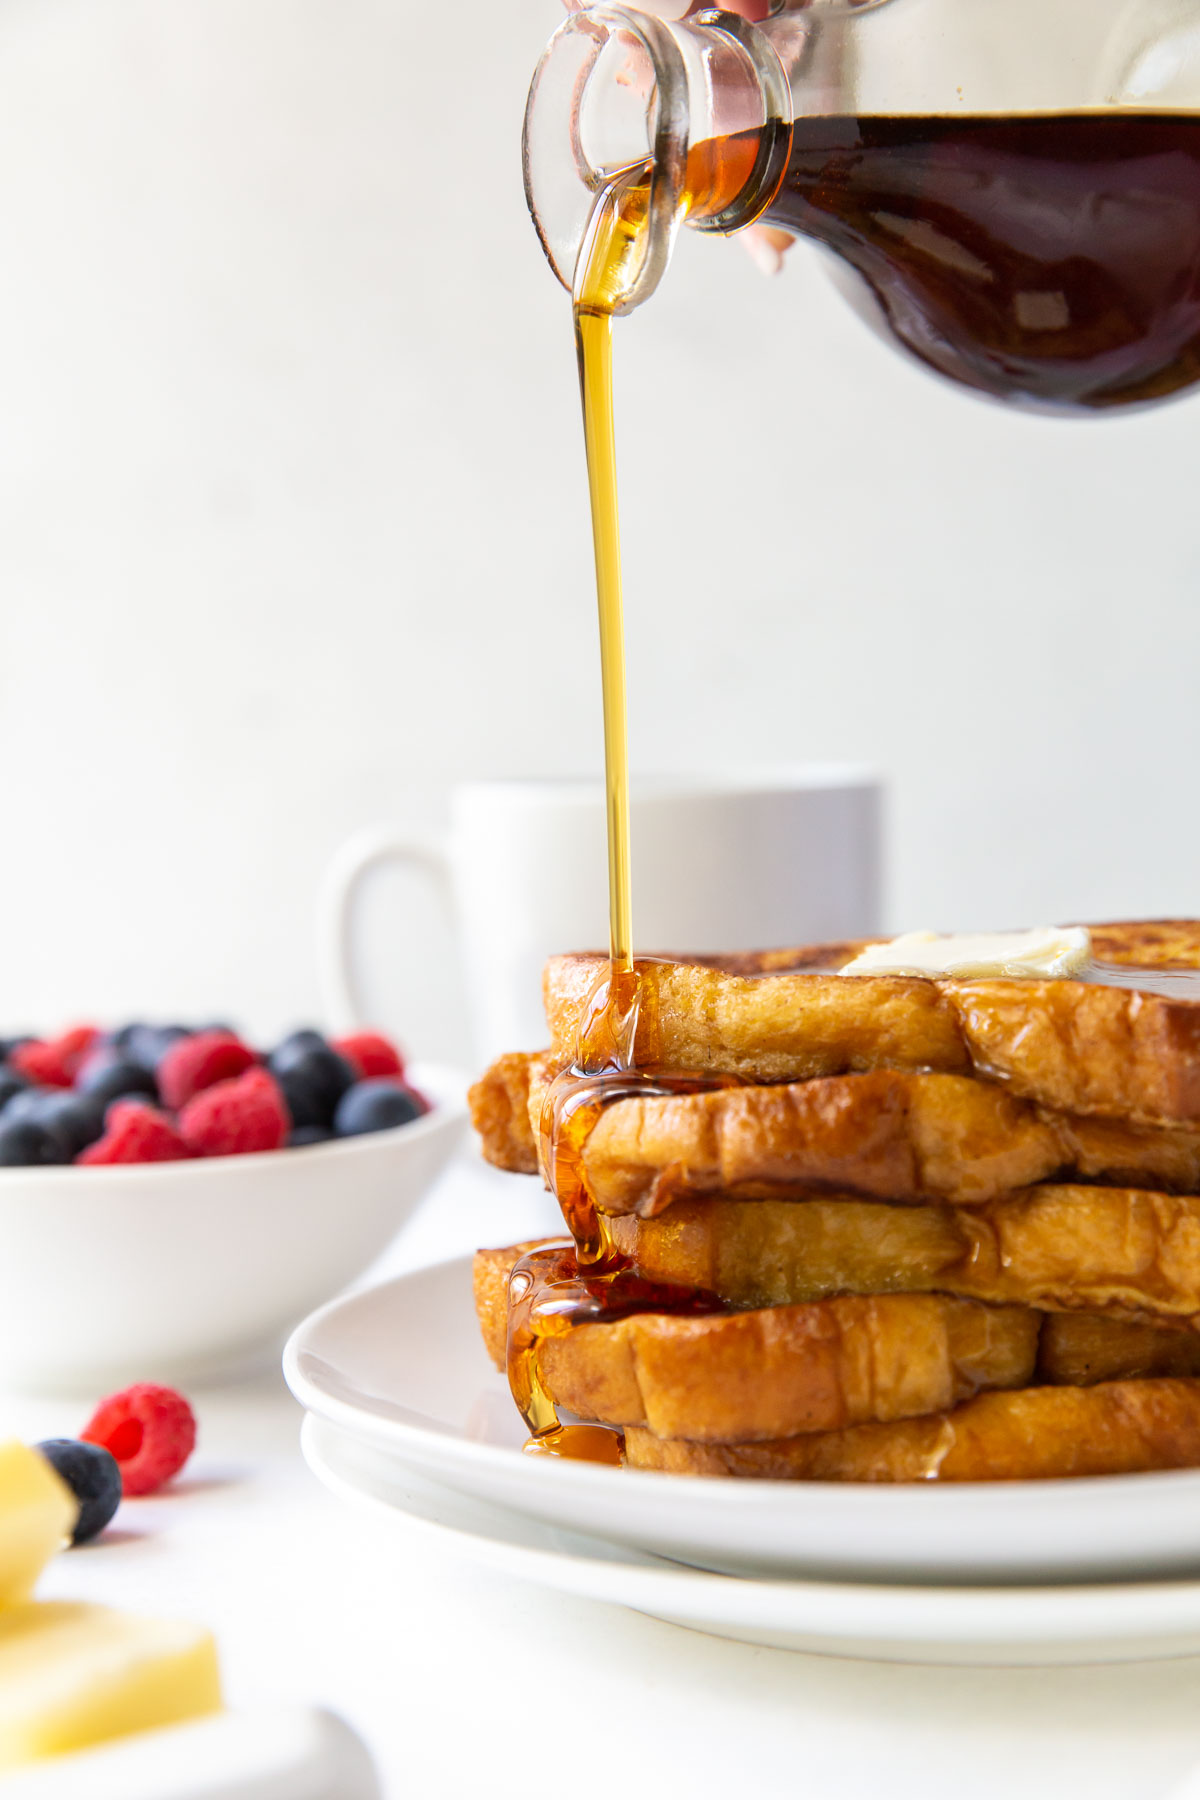 pouring maple syrup onto a stack of french toast